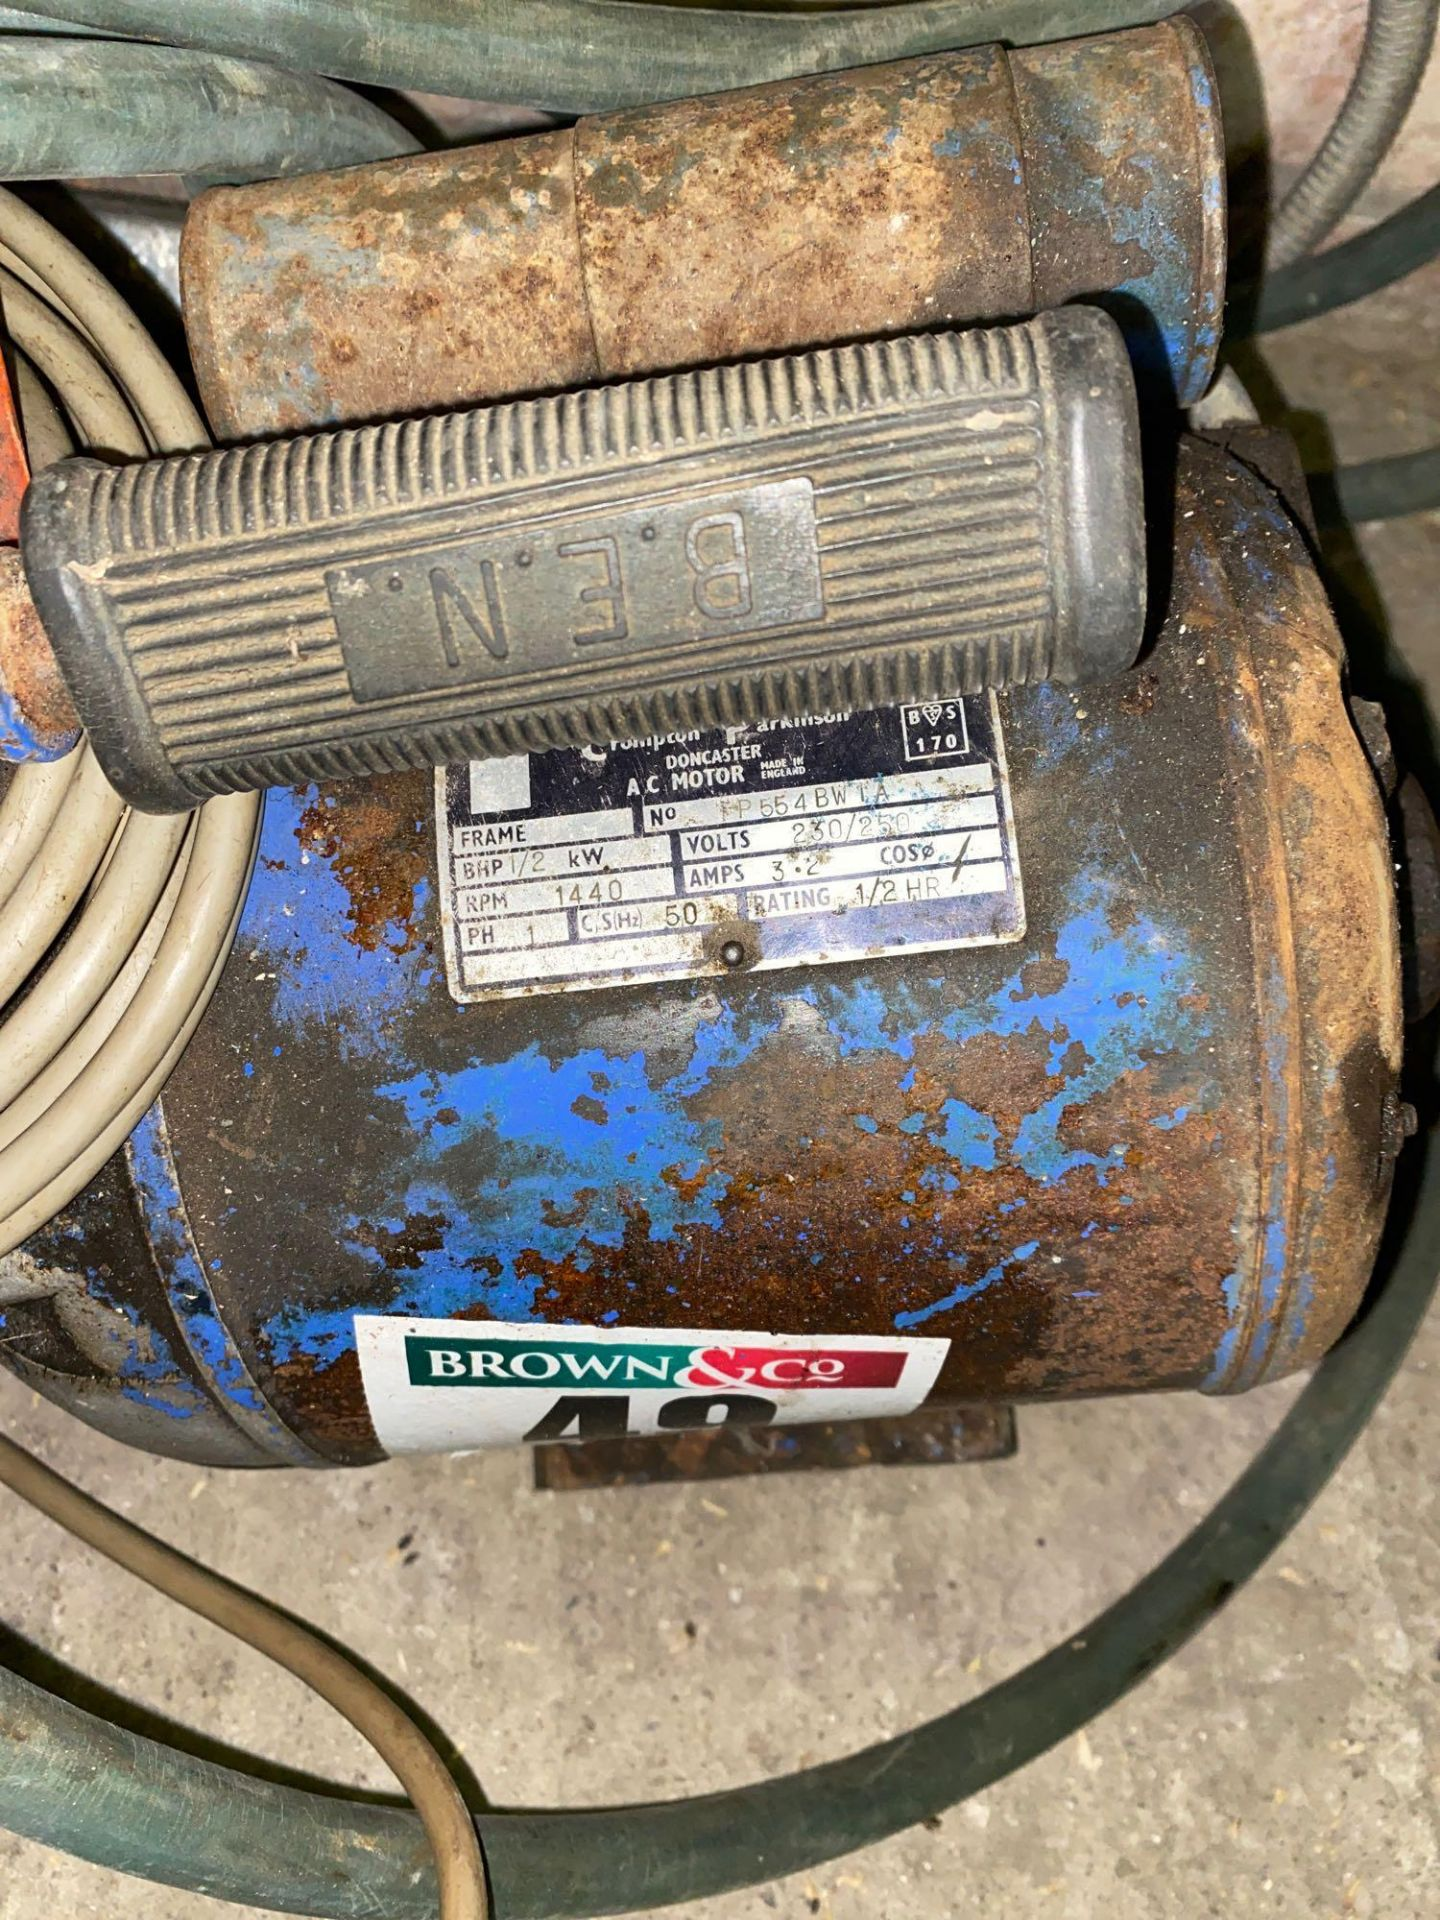 Crompton Parkinson Compressor, 240 volt for spares or repairs - Image 3 of 3